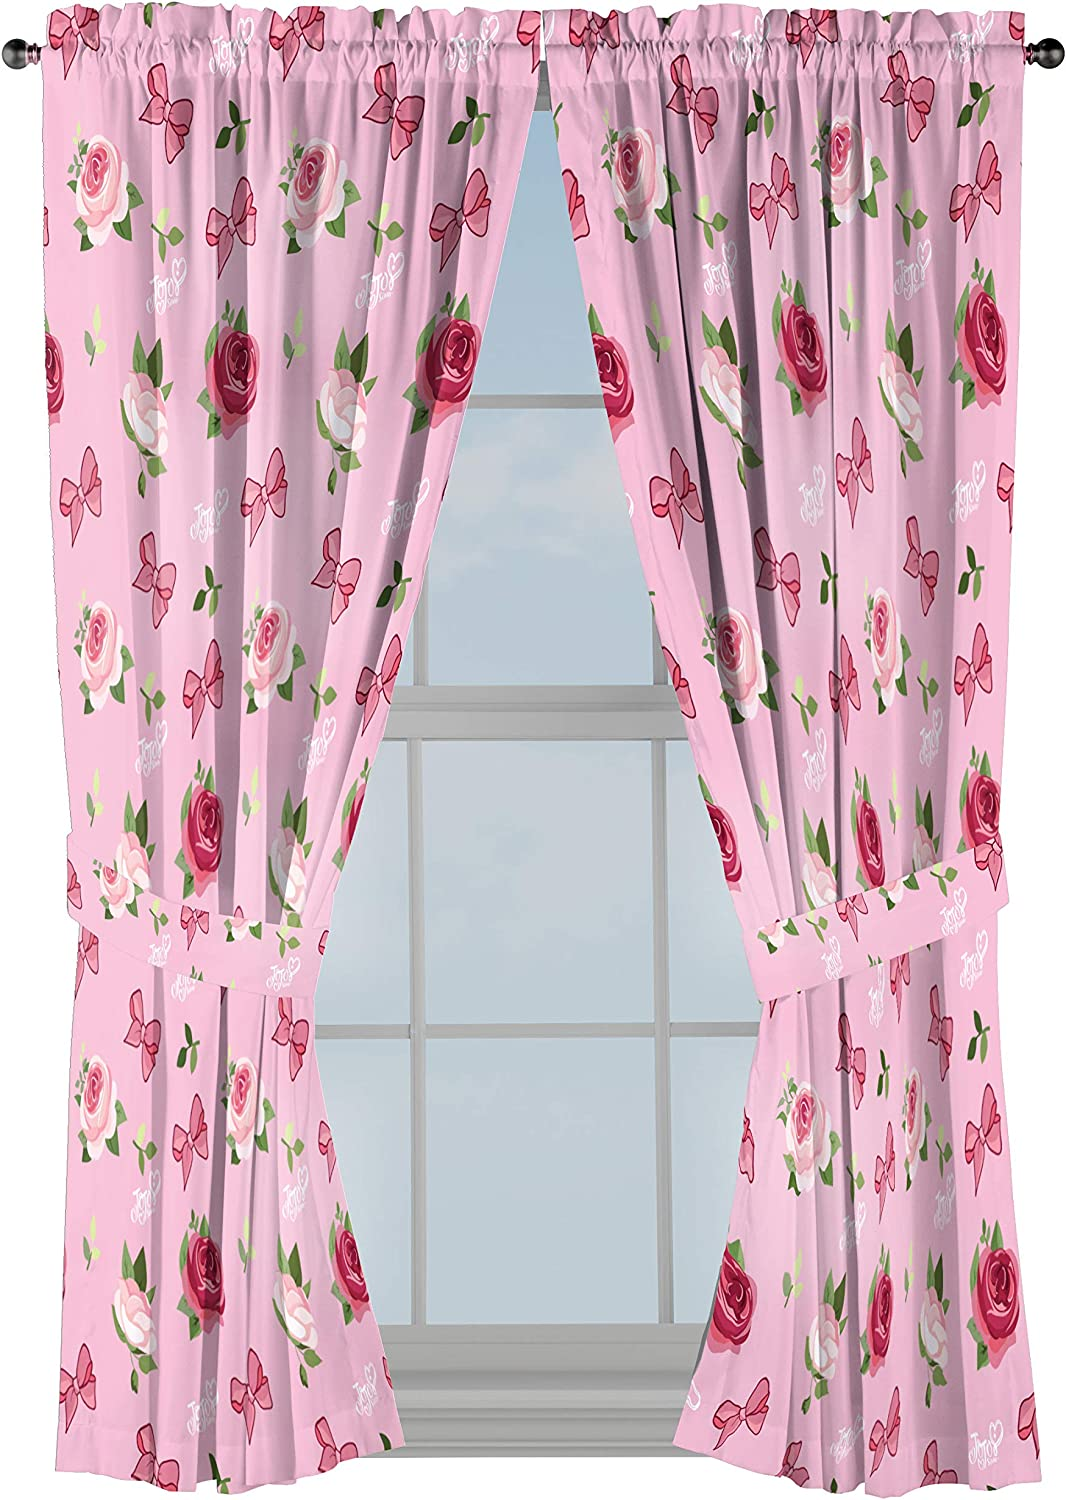 """Nickelodeon JoJo Siwa Roses & Bows 63"""" inch Drapes 4 Piece Set - Beautiful Room Décor & Easy Set up - Window Curtains Include 2 Panels & 2 Tiebacks (Official Nickelodeon Product)"""